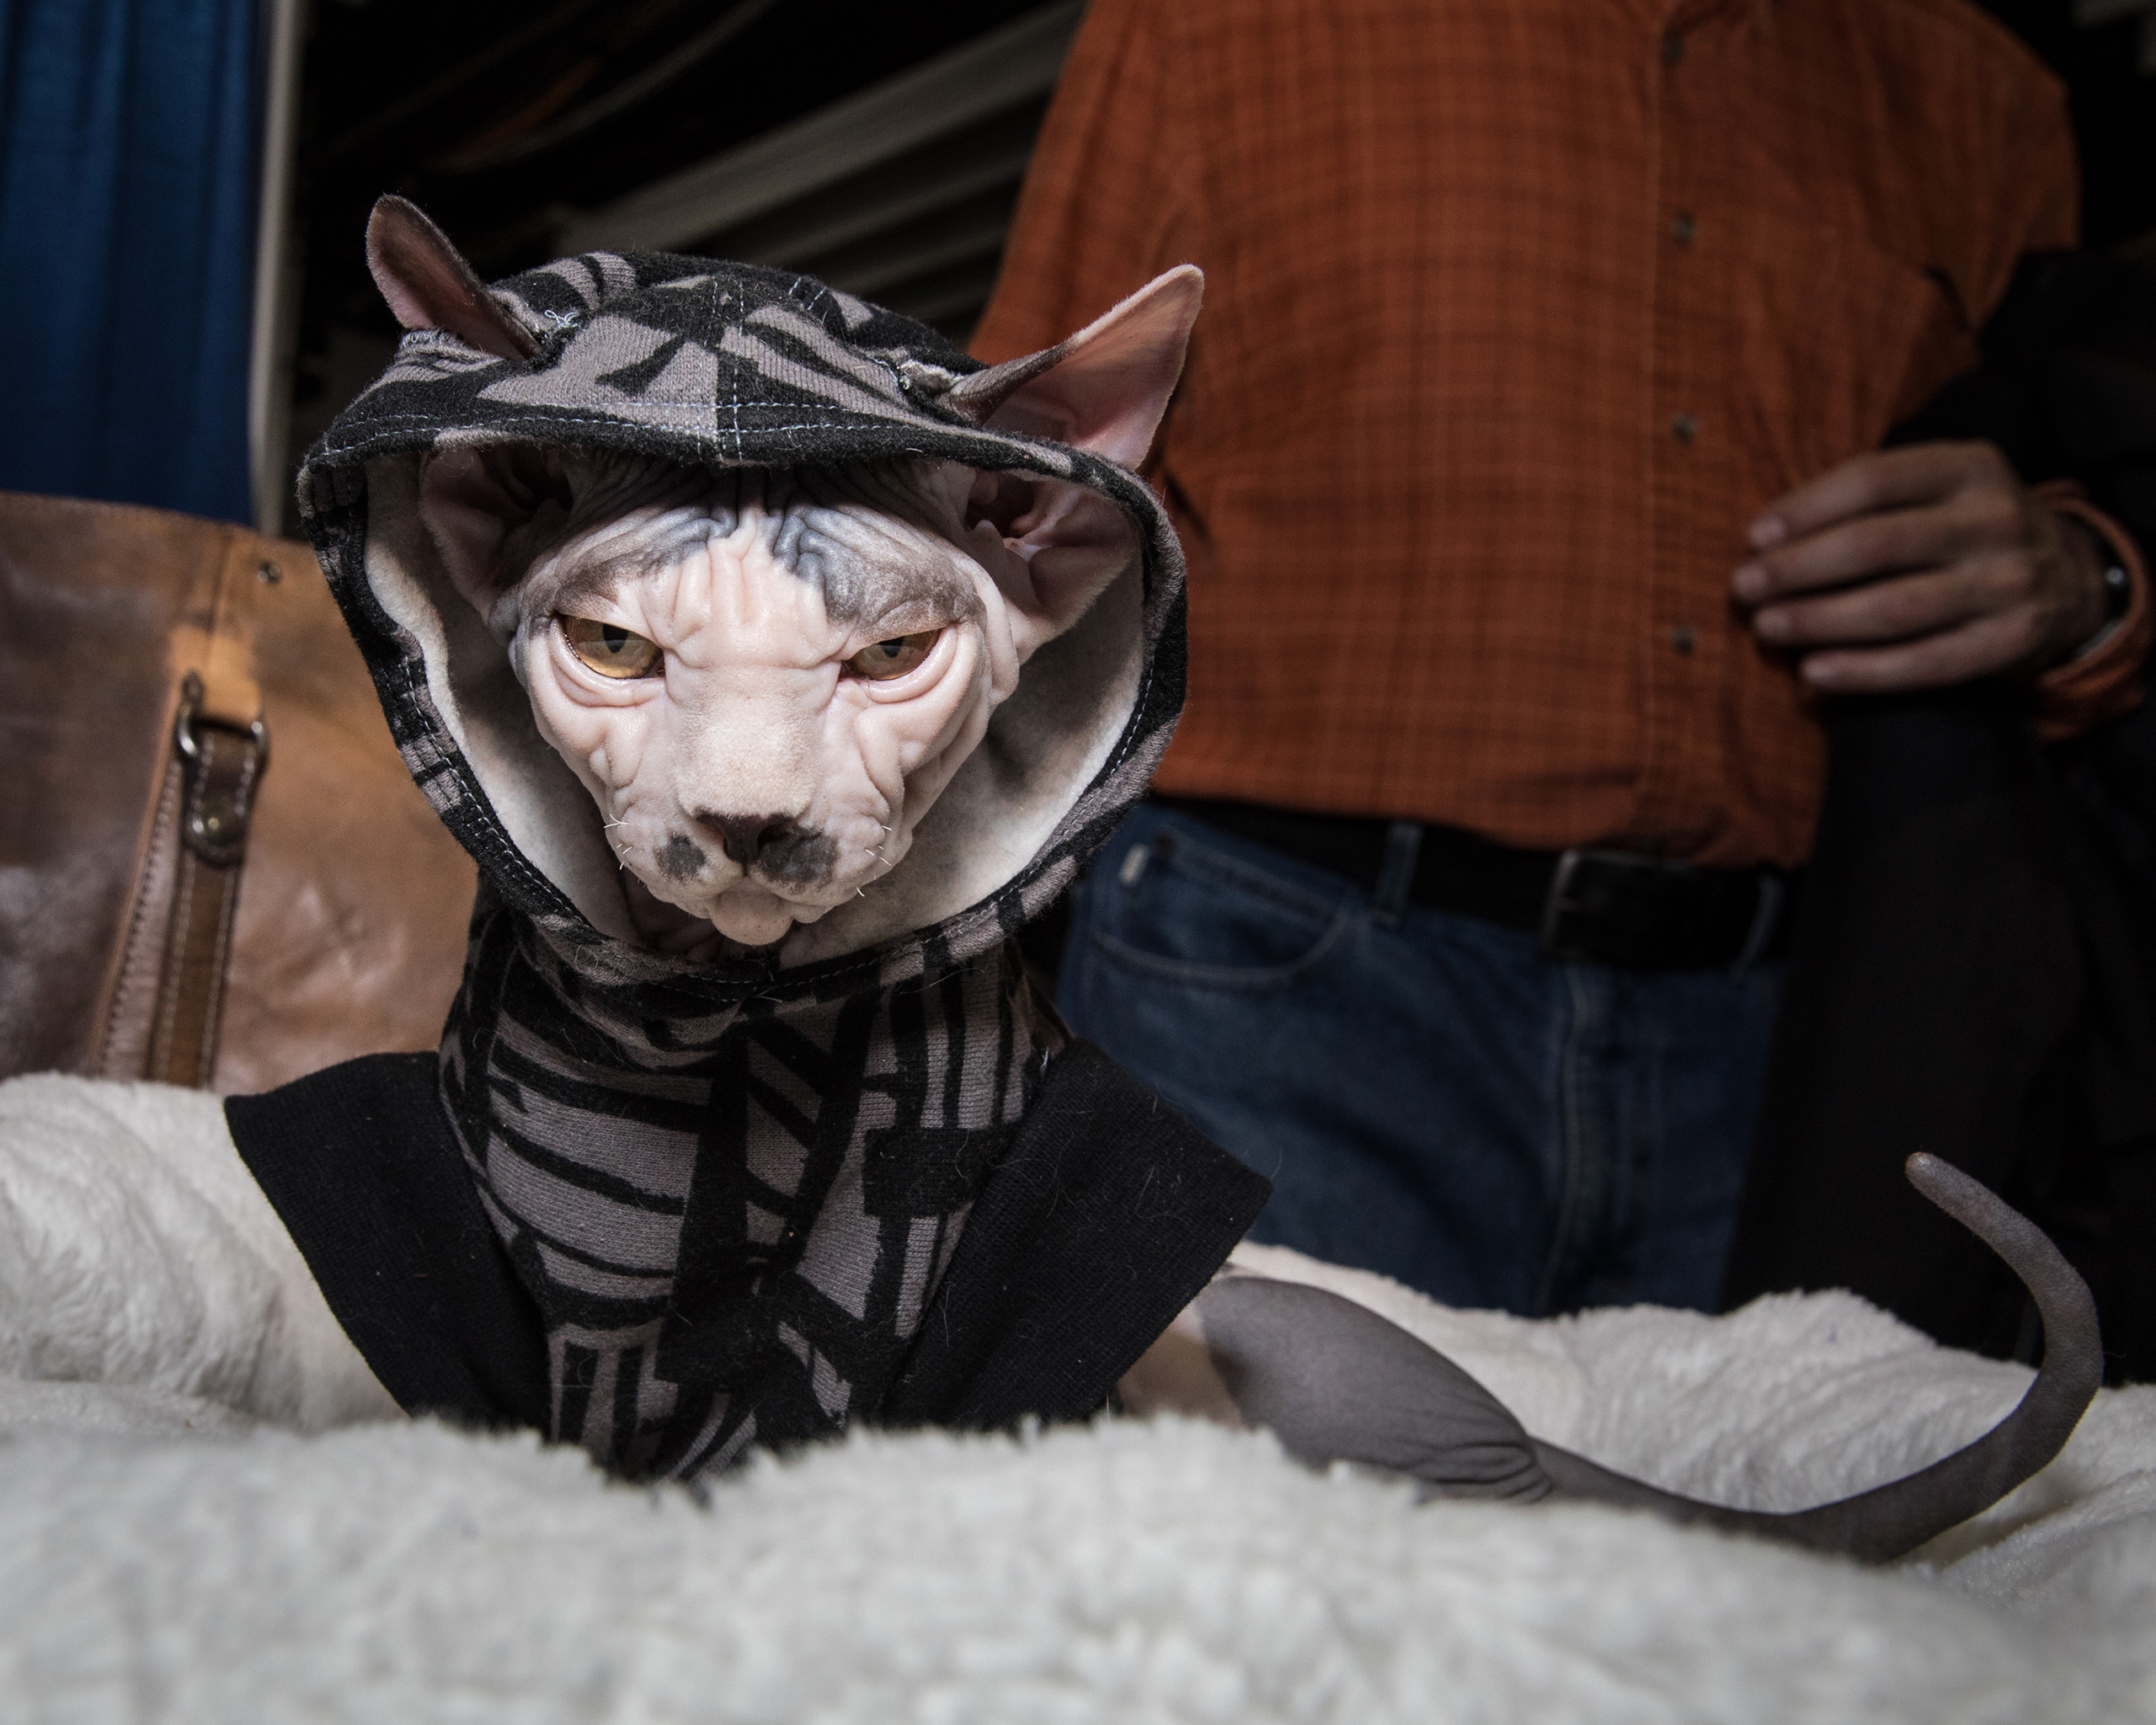 Phillipe, a Sphynx owned by Emily Greene at the American Kennel Club's Meet the Breeds event on Feb. 11, 2017.